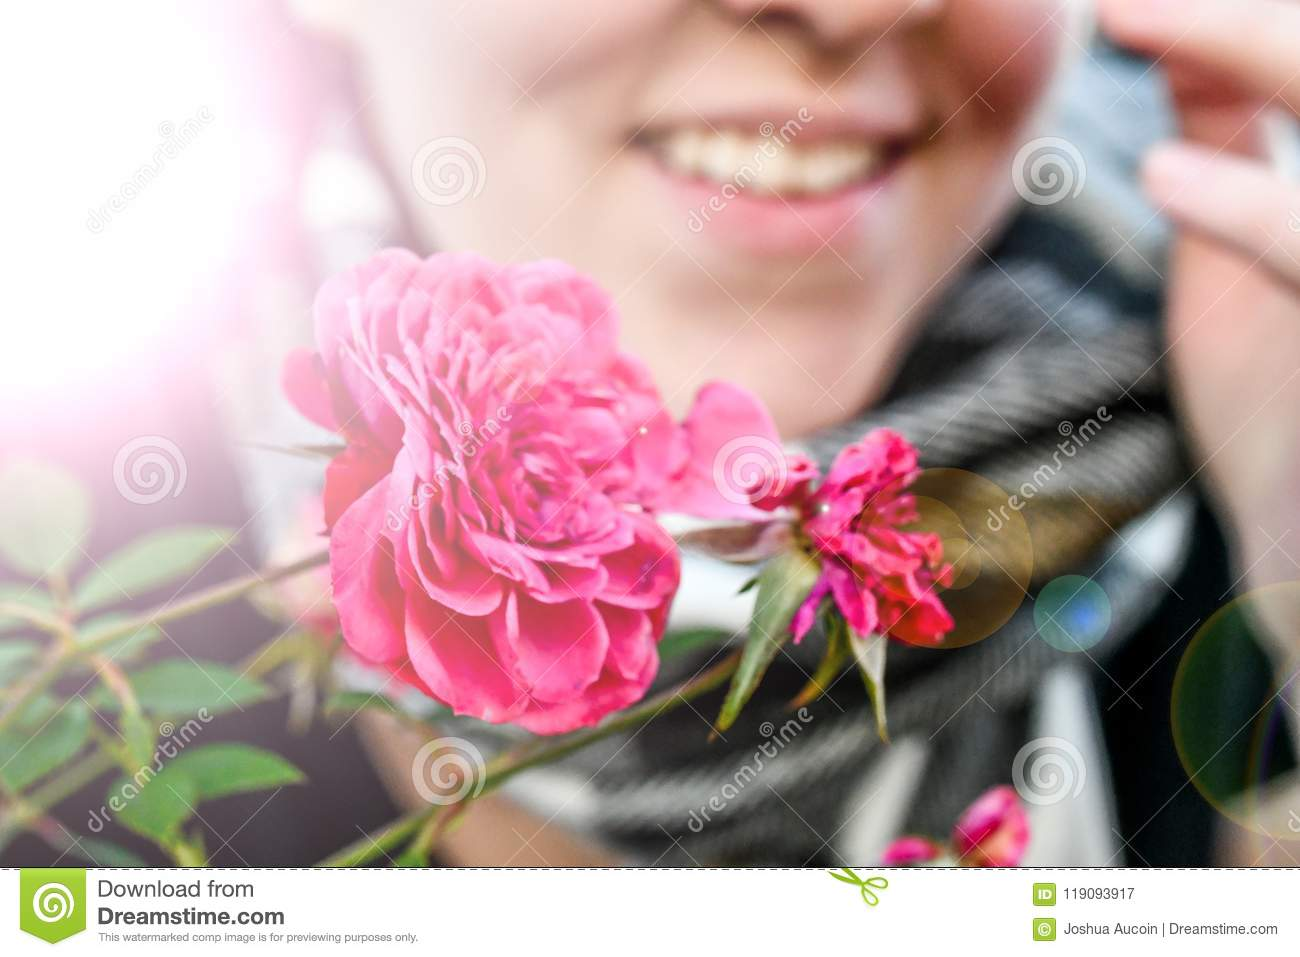 A radiant pink flower held by a smiling happy woman who appears to be cold.